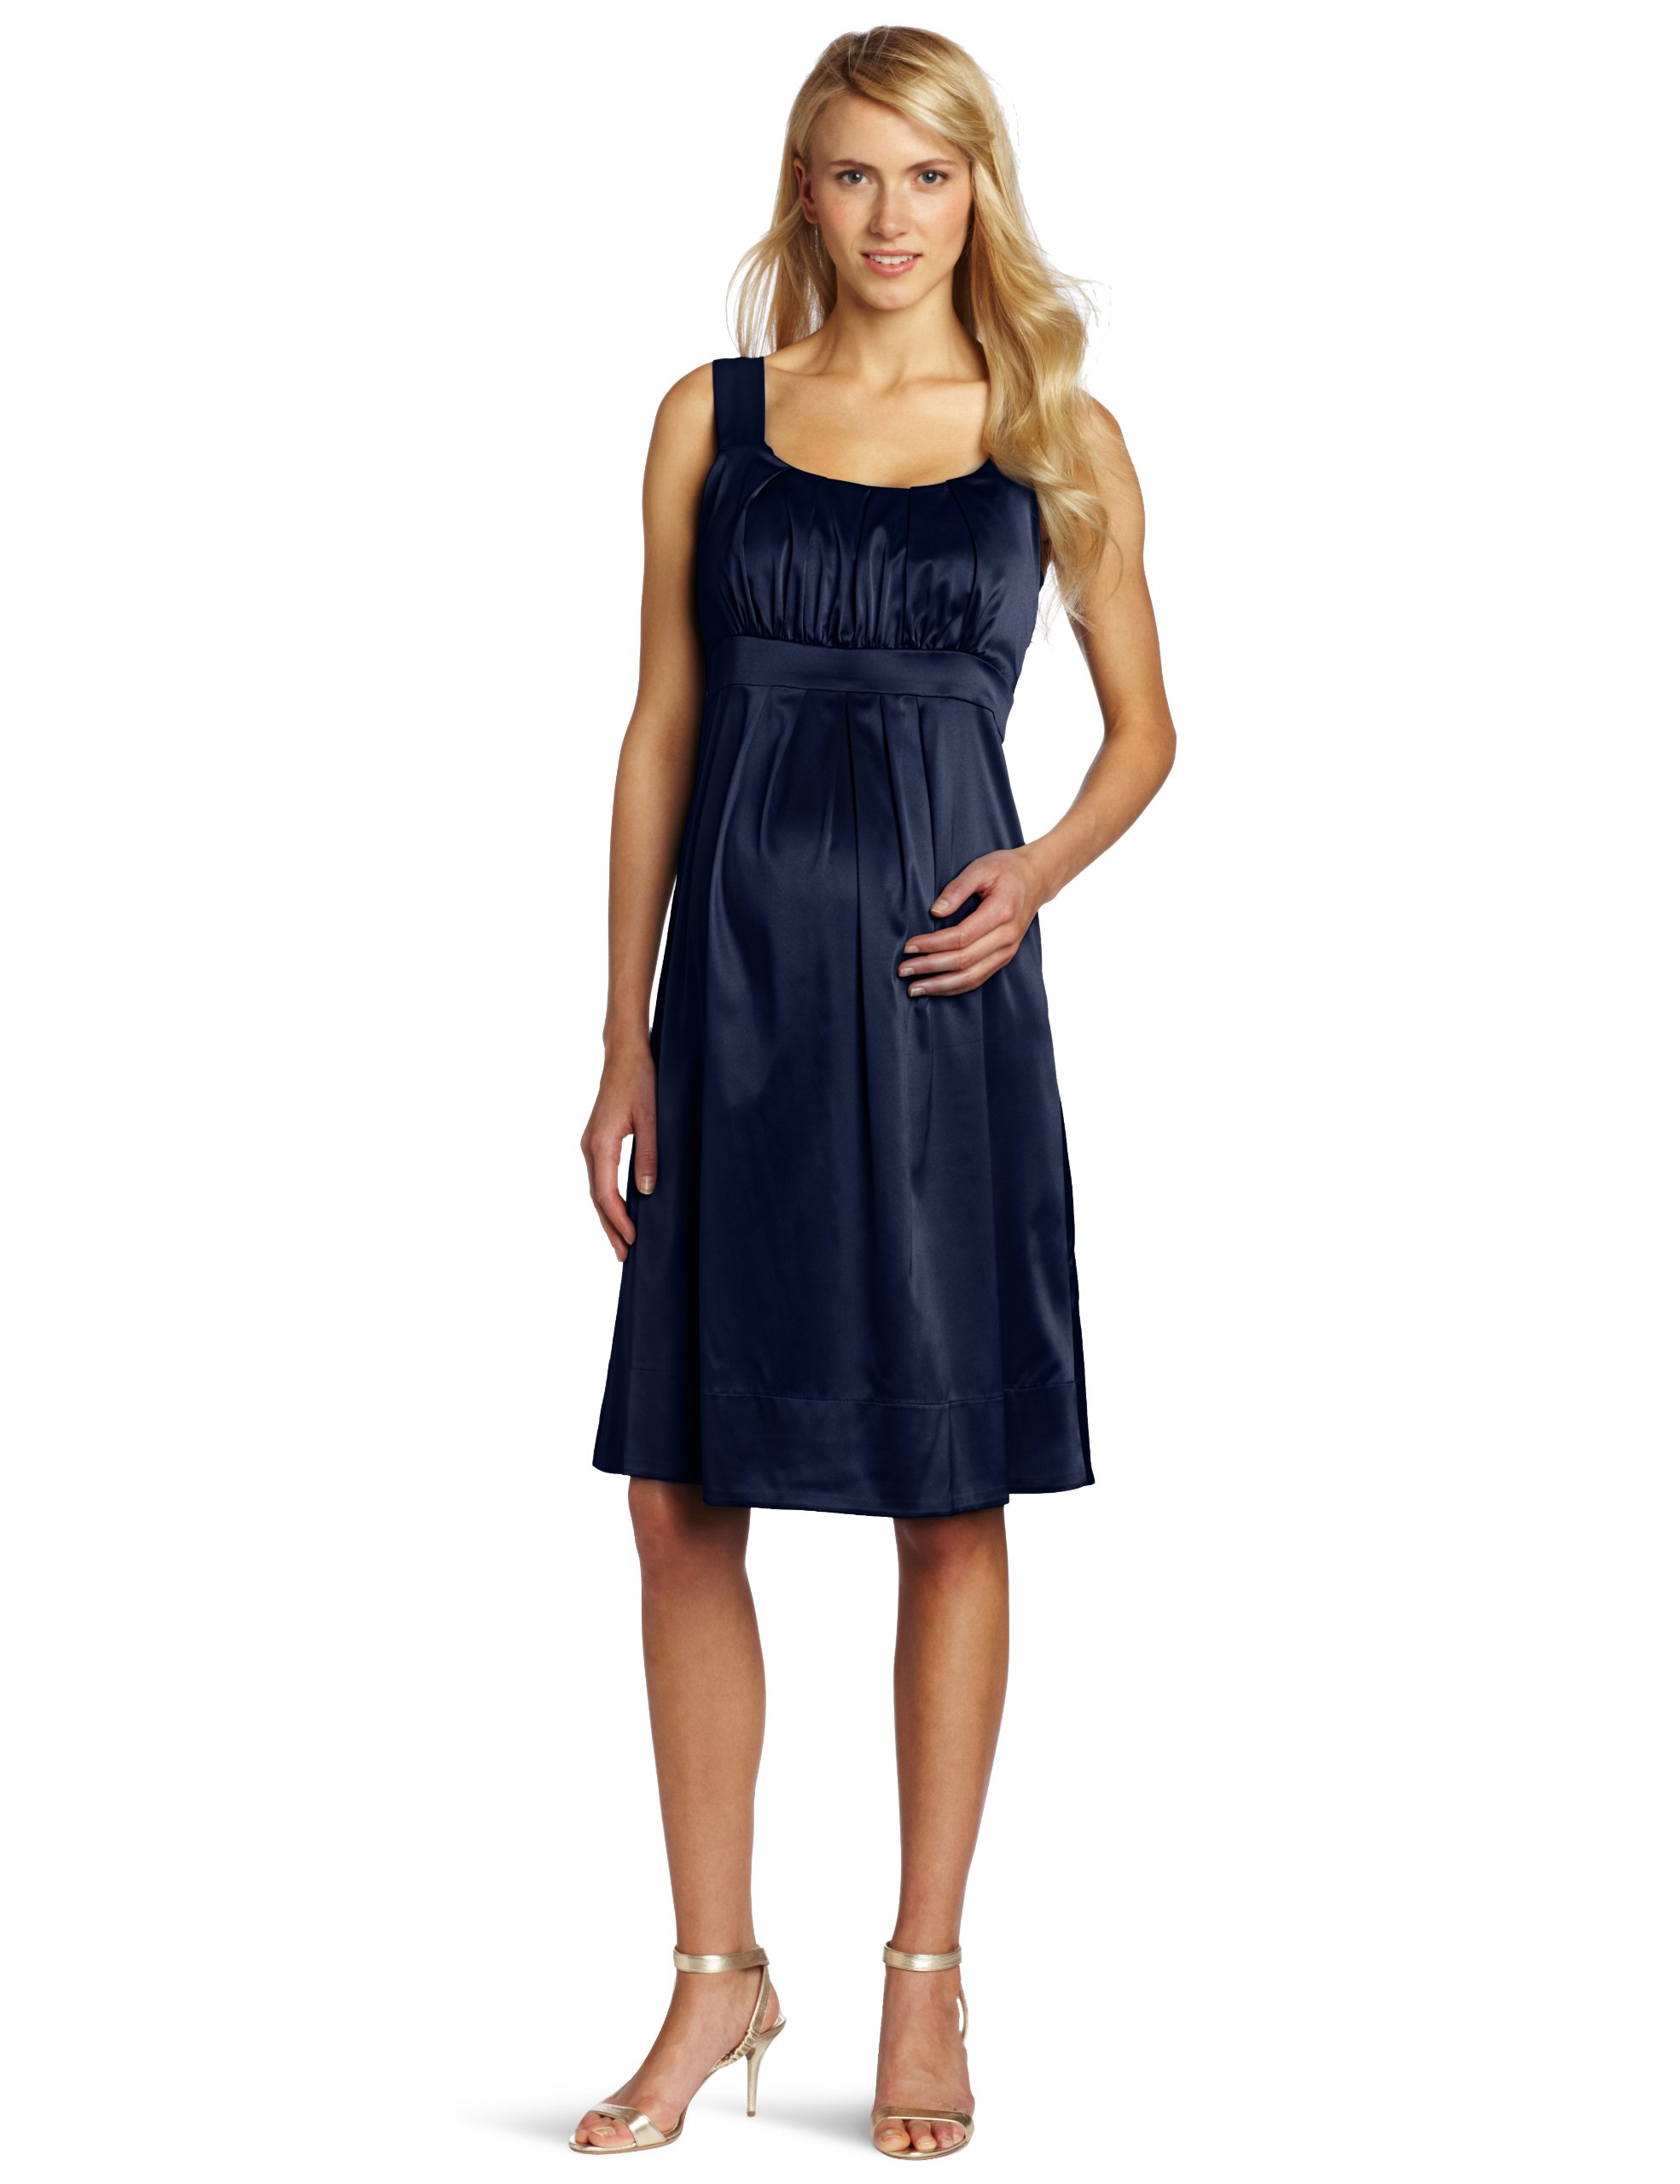 Ripe Maternity Women's Maternity Alexis Dress, Ink, Large by Ripe